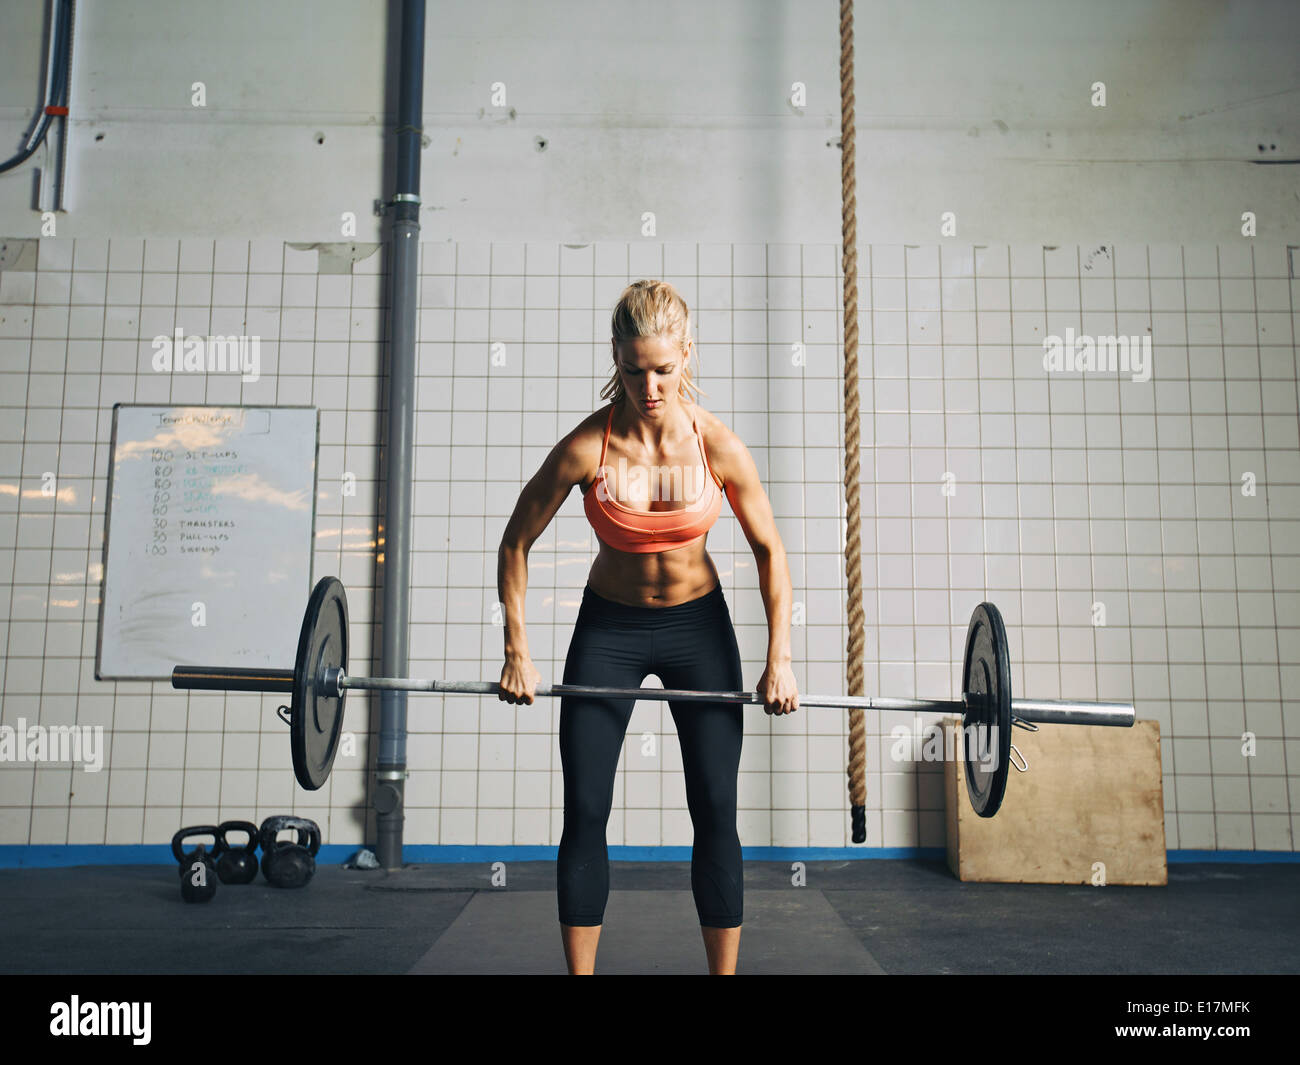 Fit and attractive caucasian female holding a barbell in her hands. Crossfit woman lifting heavy weights in gym. - Stock Image